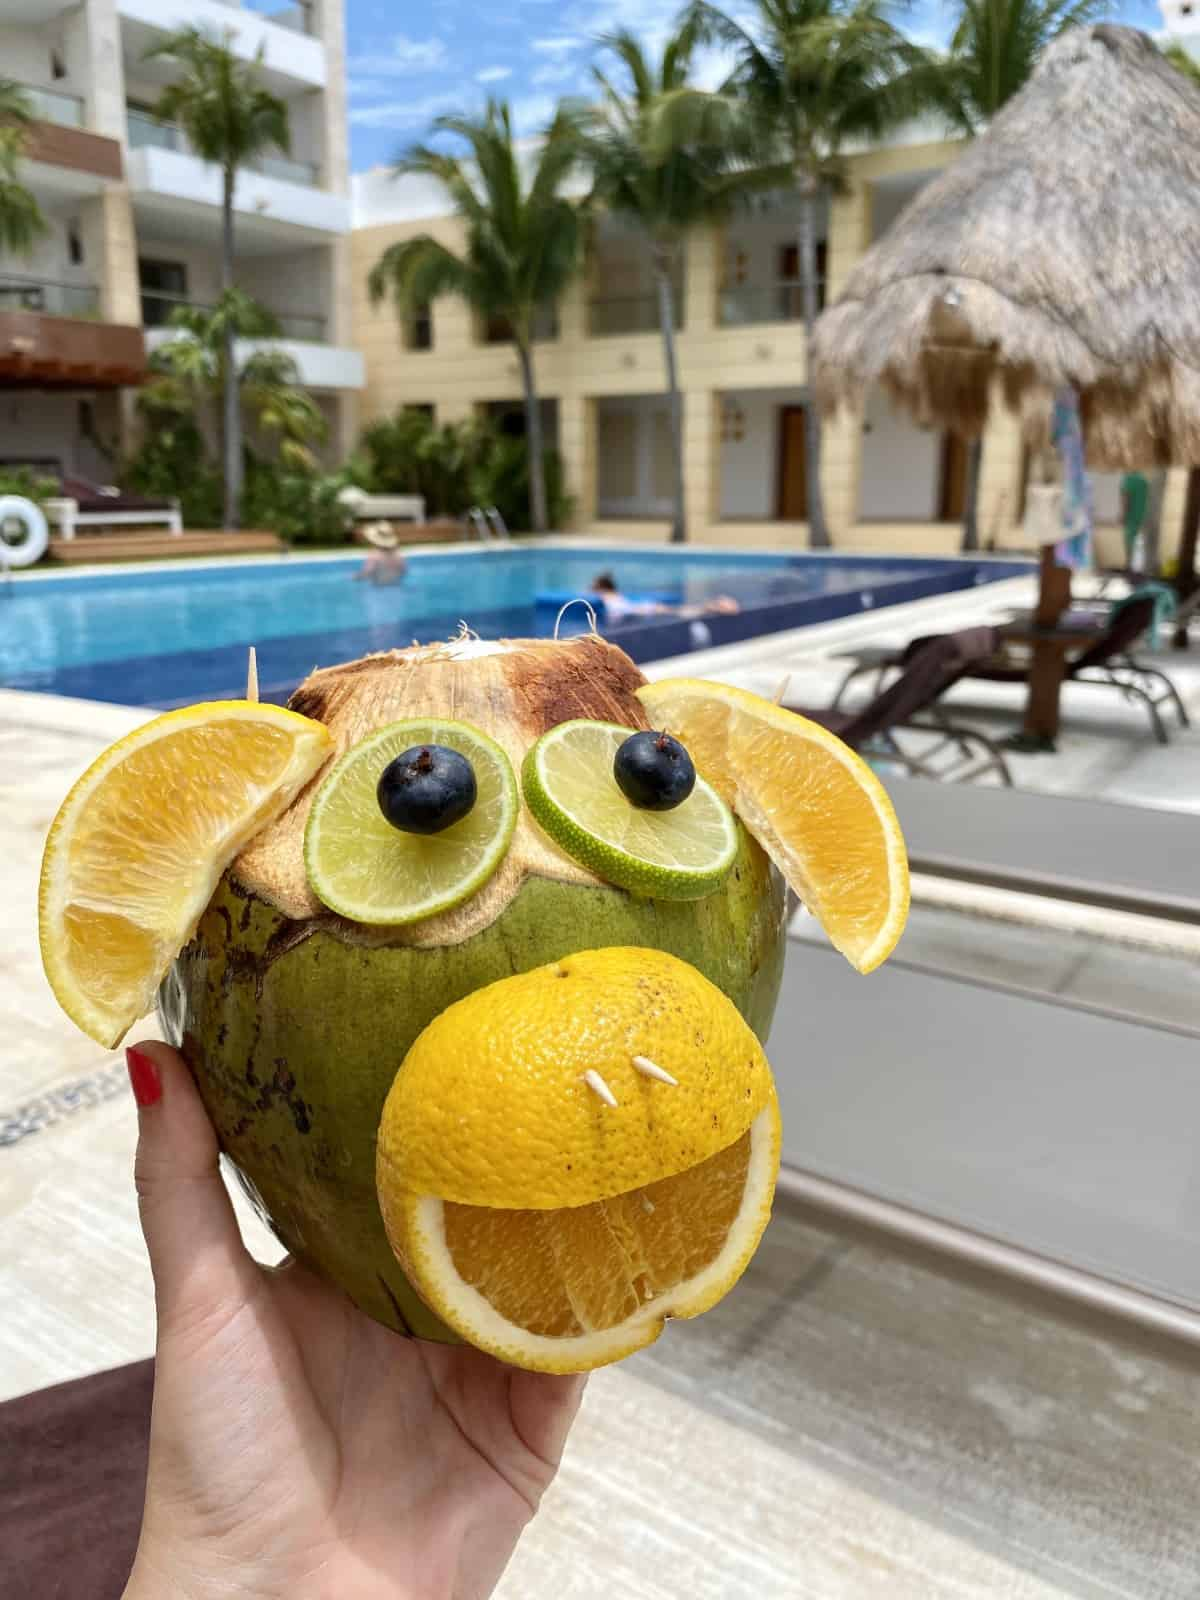 A coco loco at Excellence Playa Mujeres